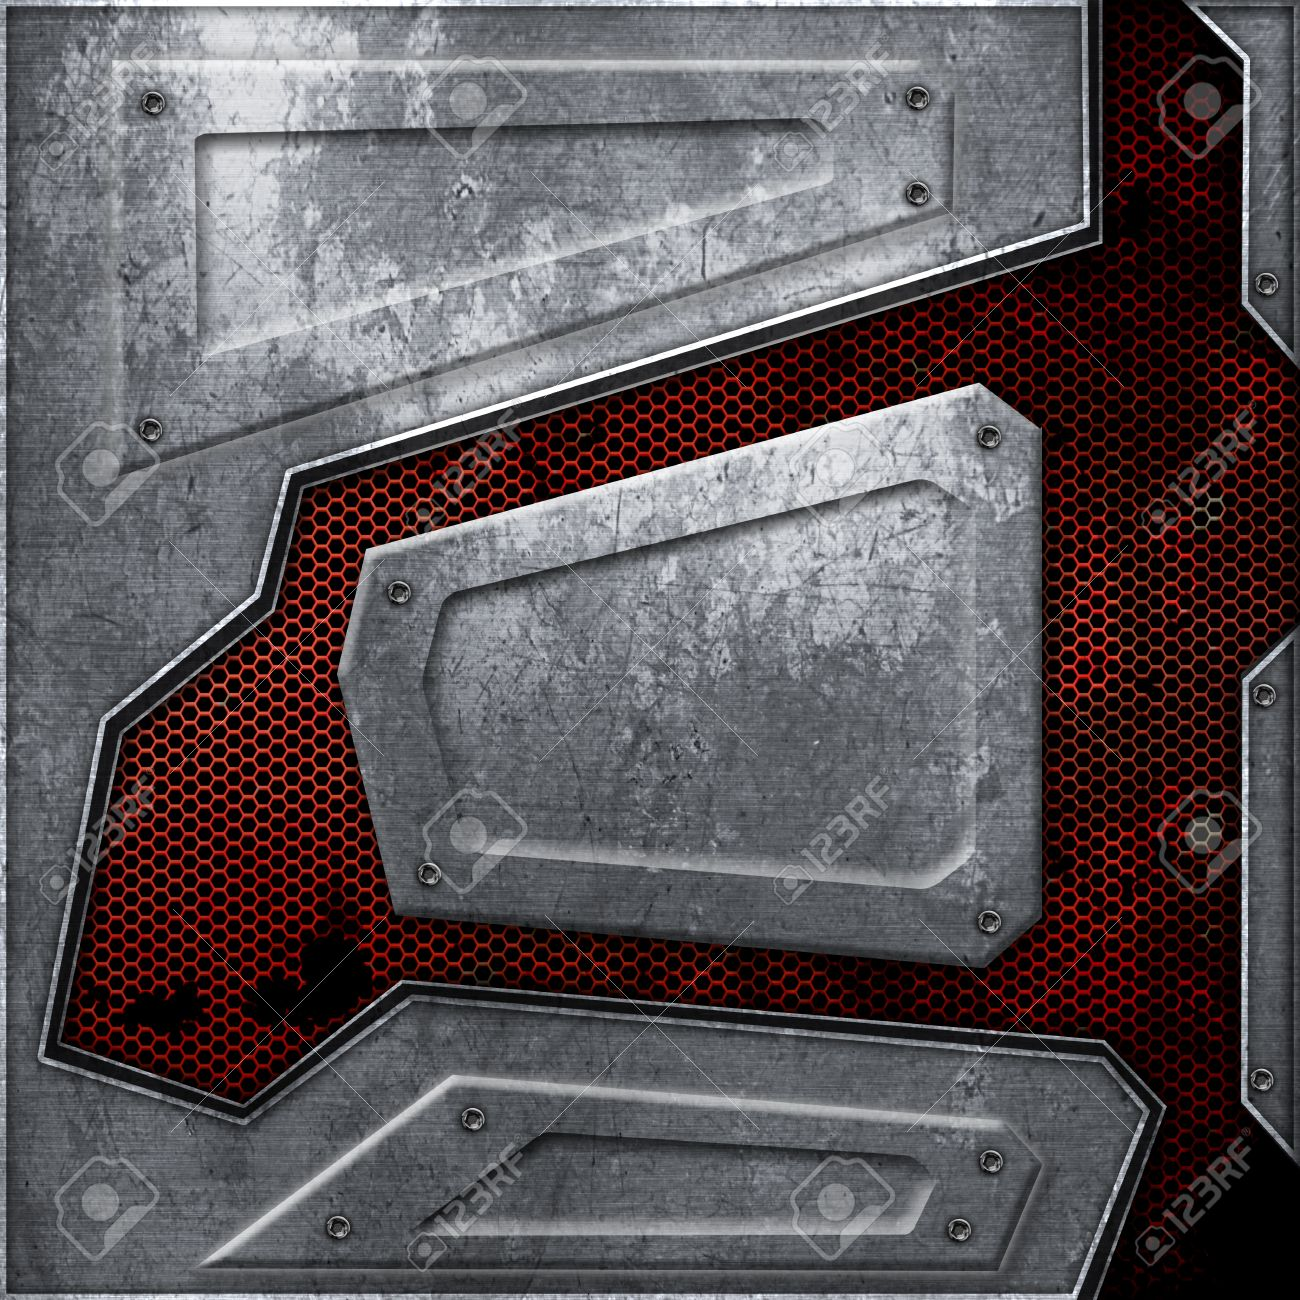 sci fi wall texture. Illustration - Scifi Wall. Rust Metal Wall And Red Mesh. Background Texture 3d Illustration. Technology Concept. Sci Fi G